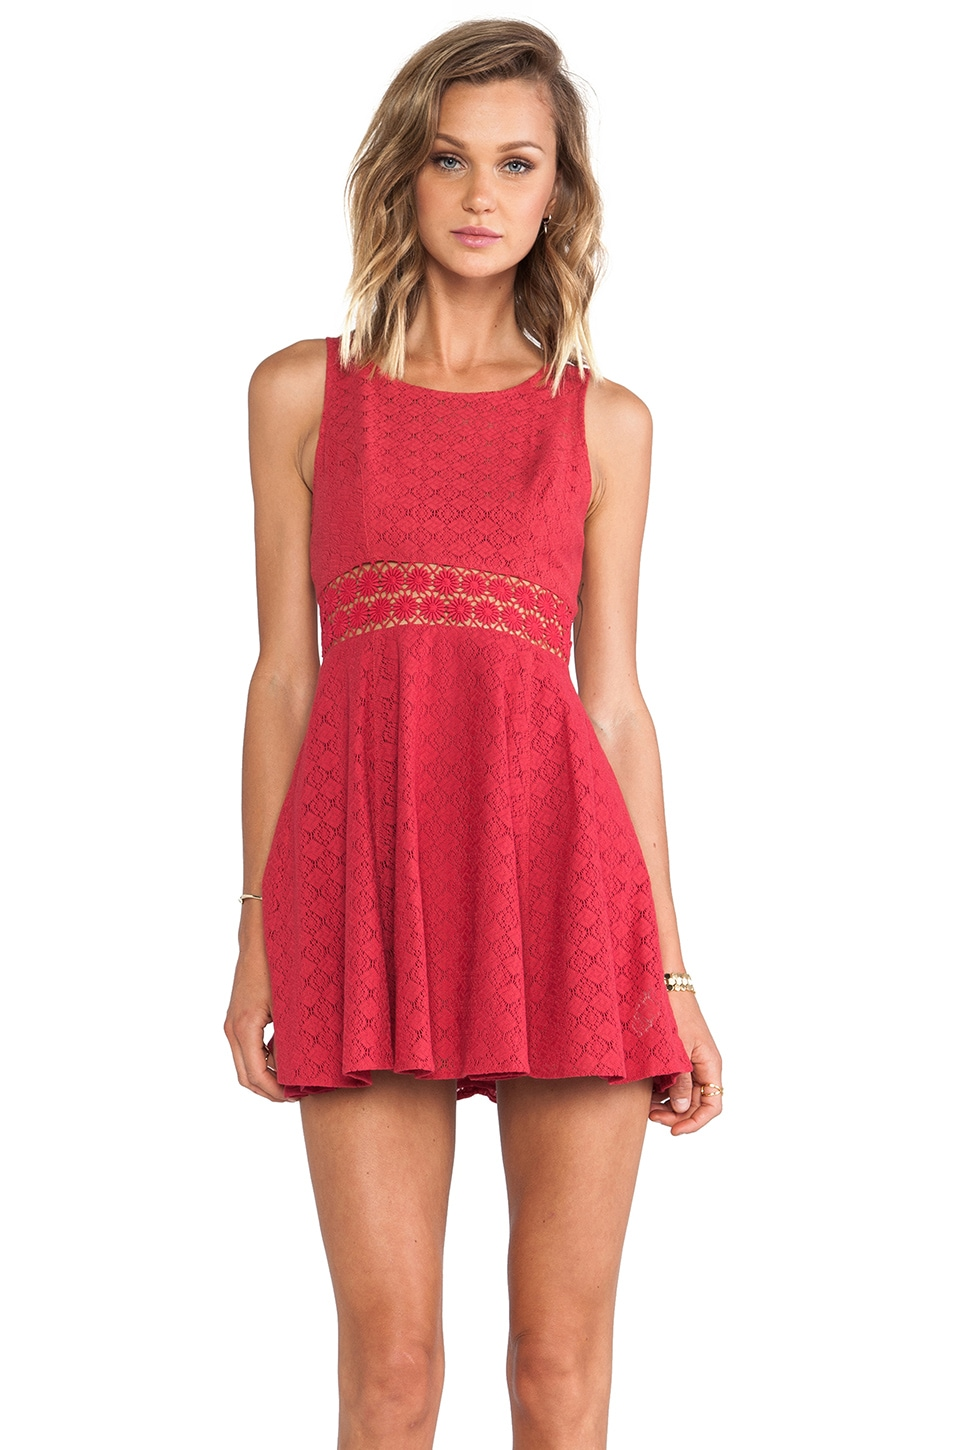 Free People Daisy Waist Dress in Tibeten Red